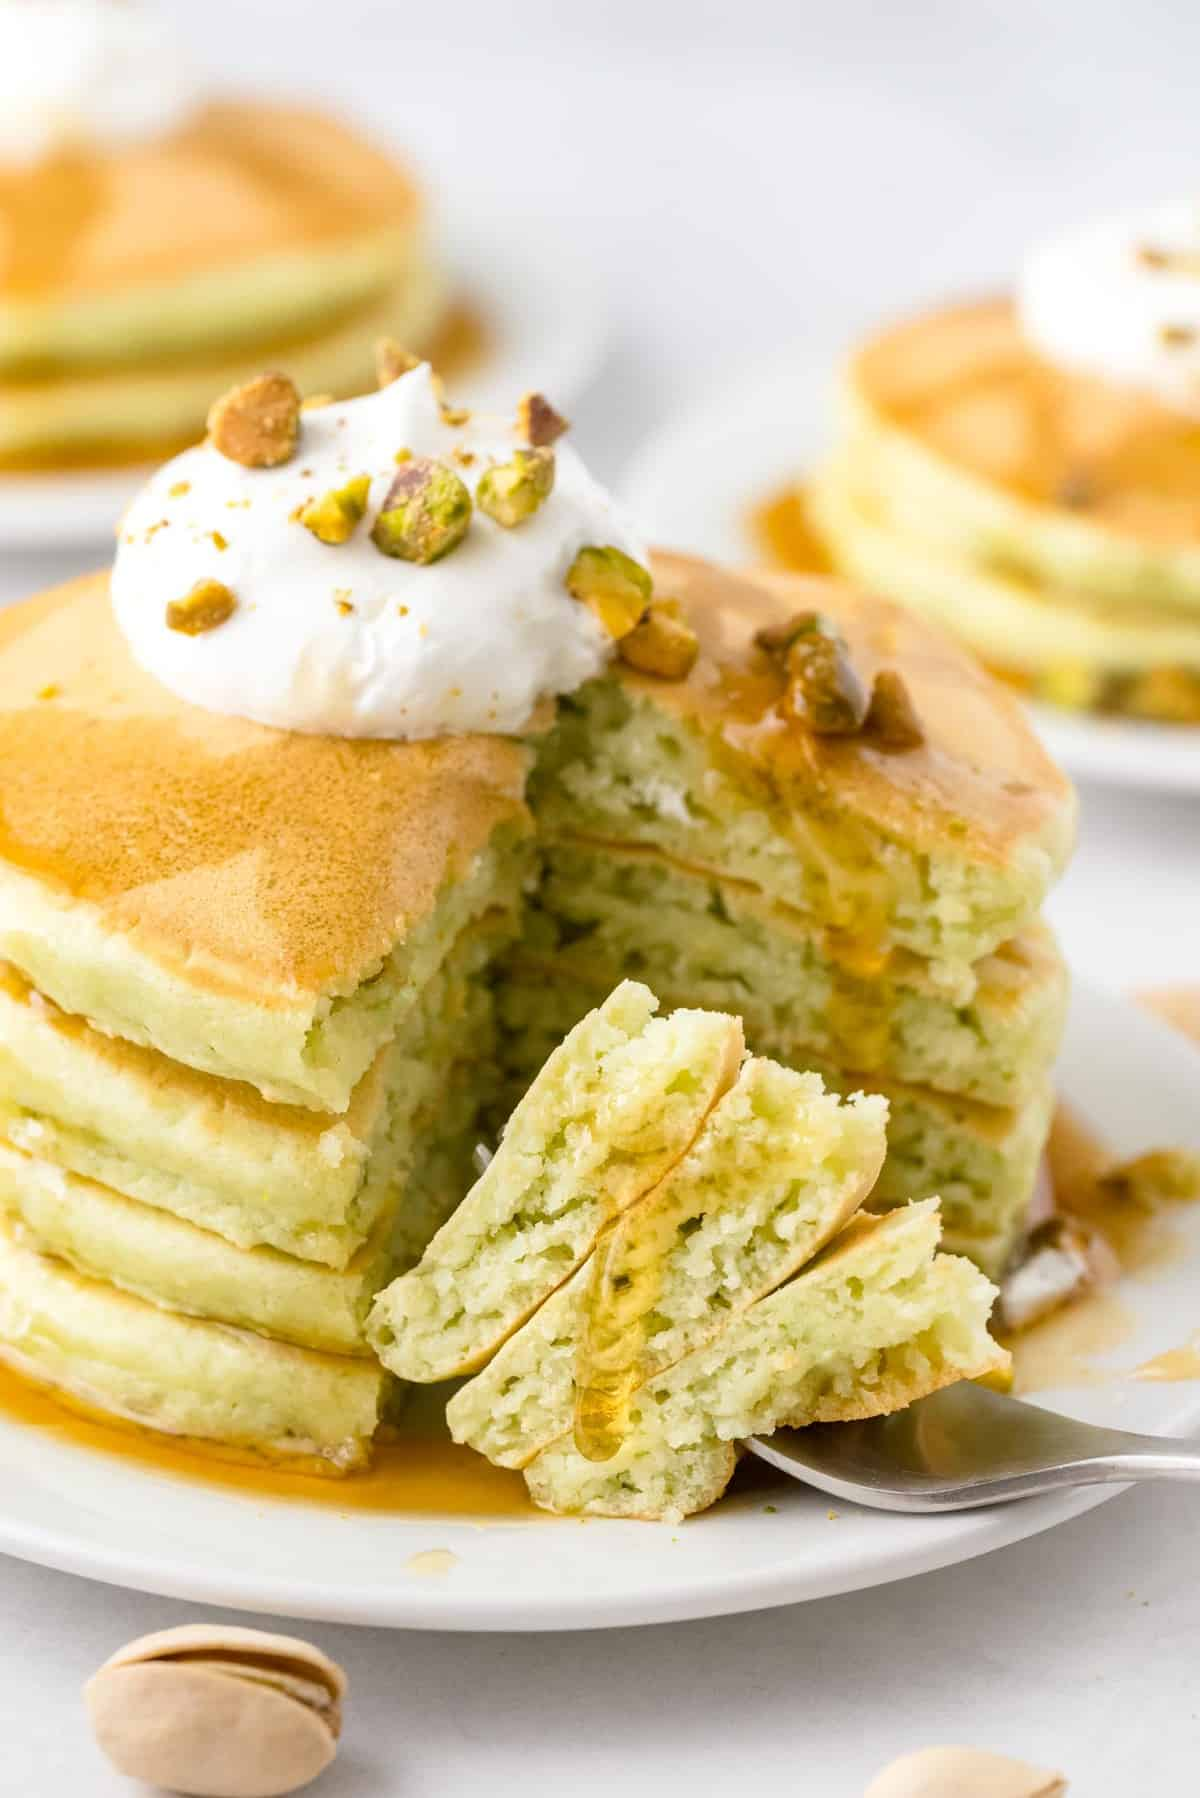 Stack of pistachio pancakes, cut out to see texture.